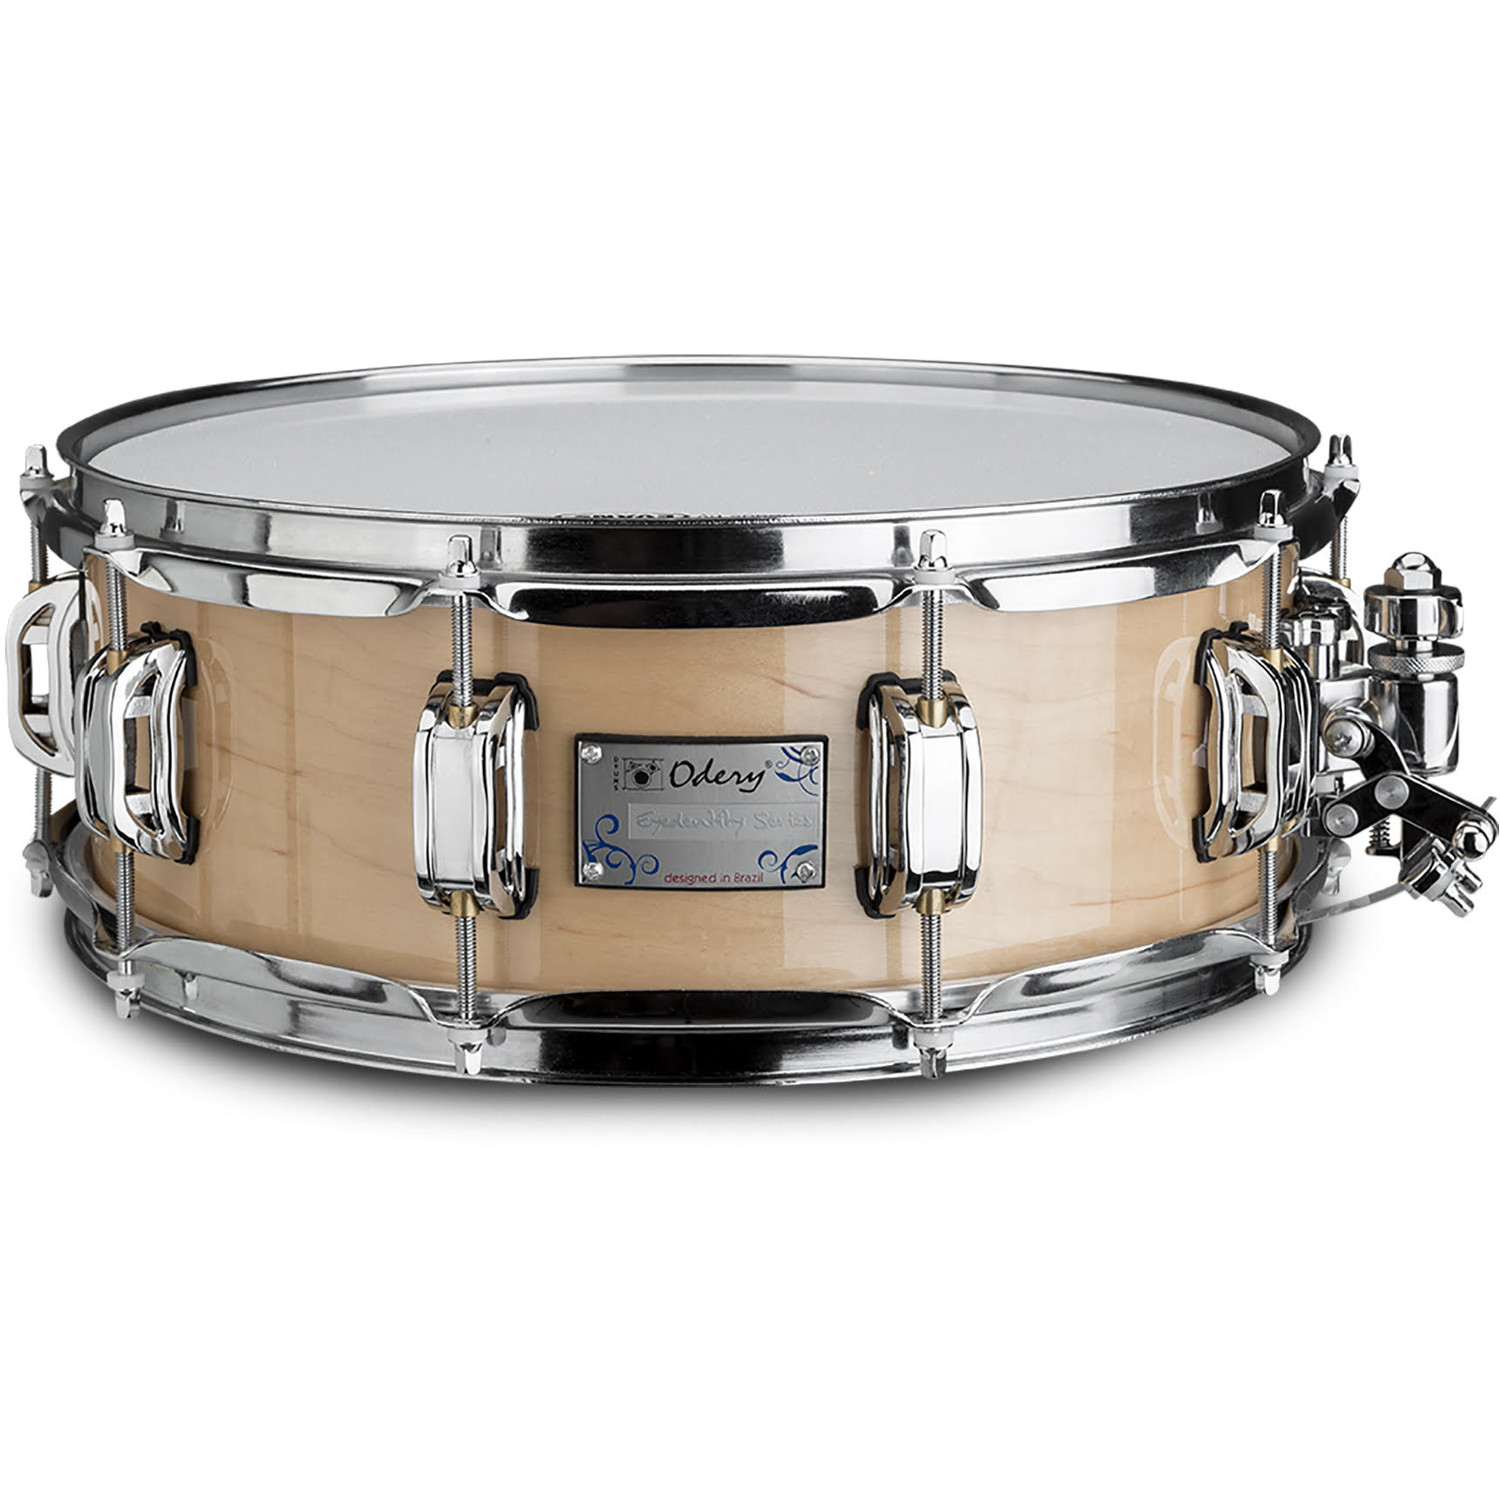 Odery Eyedentity 14 x 4.5 inch maple snare drum, natural